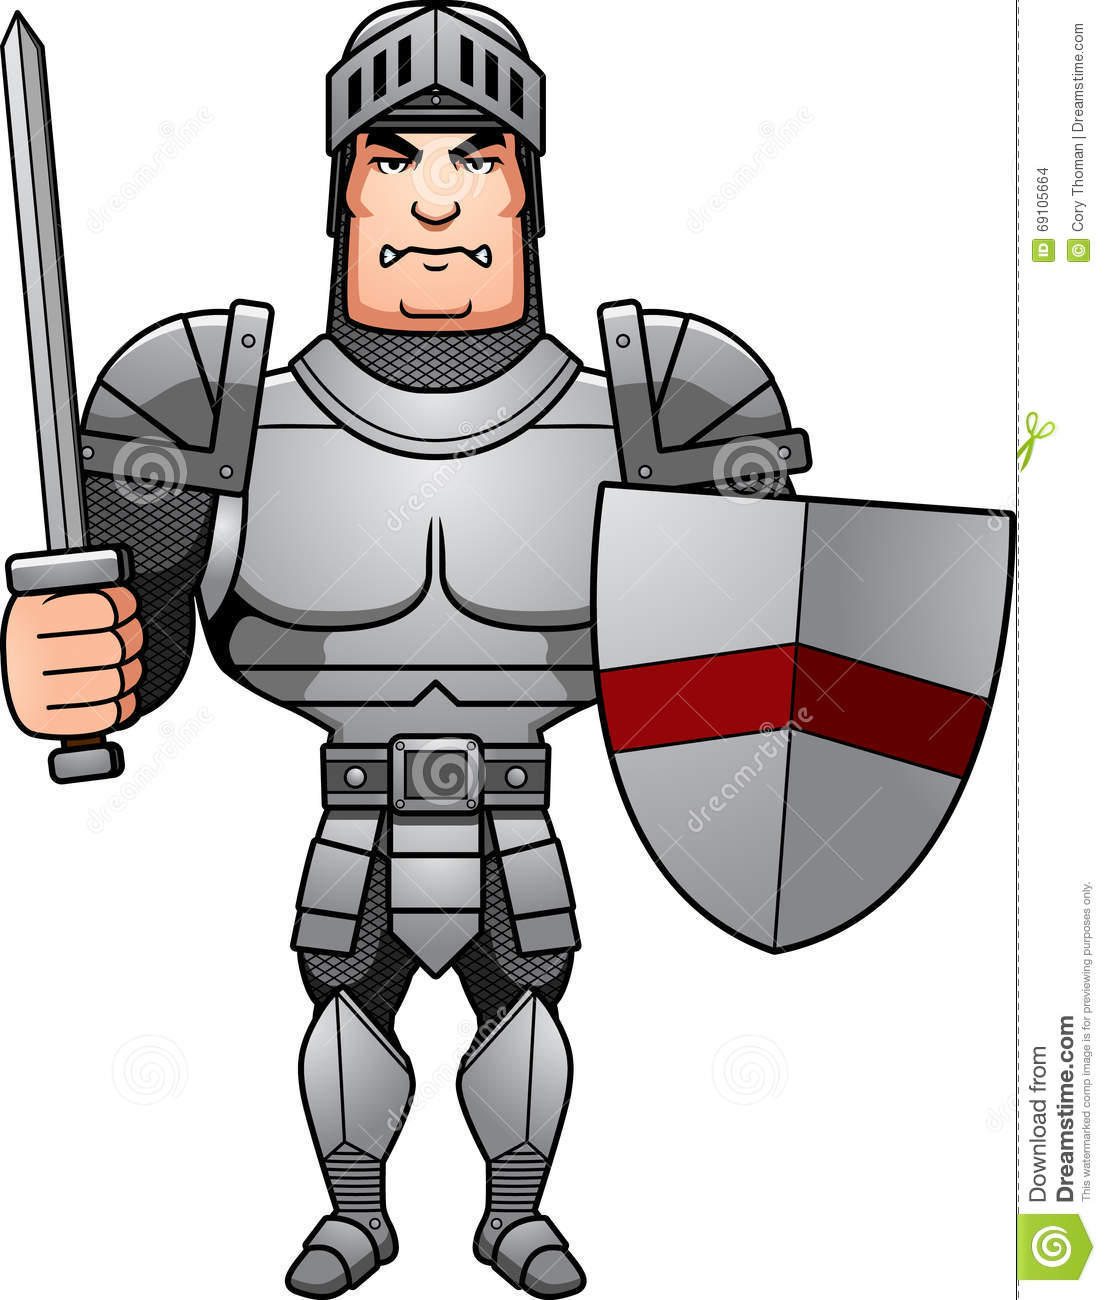 Cartoon Knight Battle stock vector. Illustration of battle ...